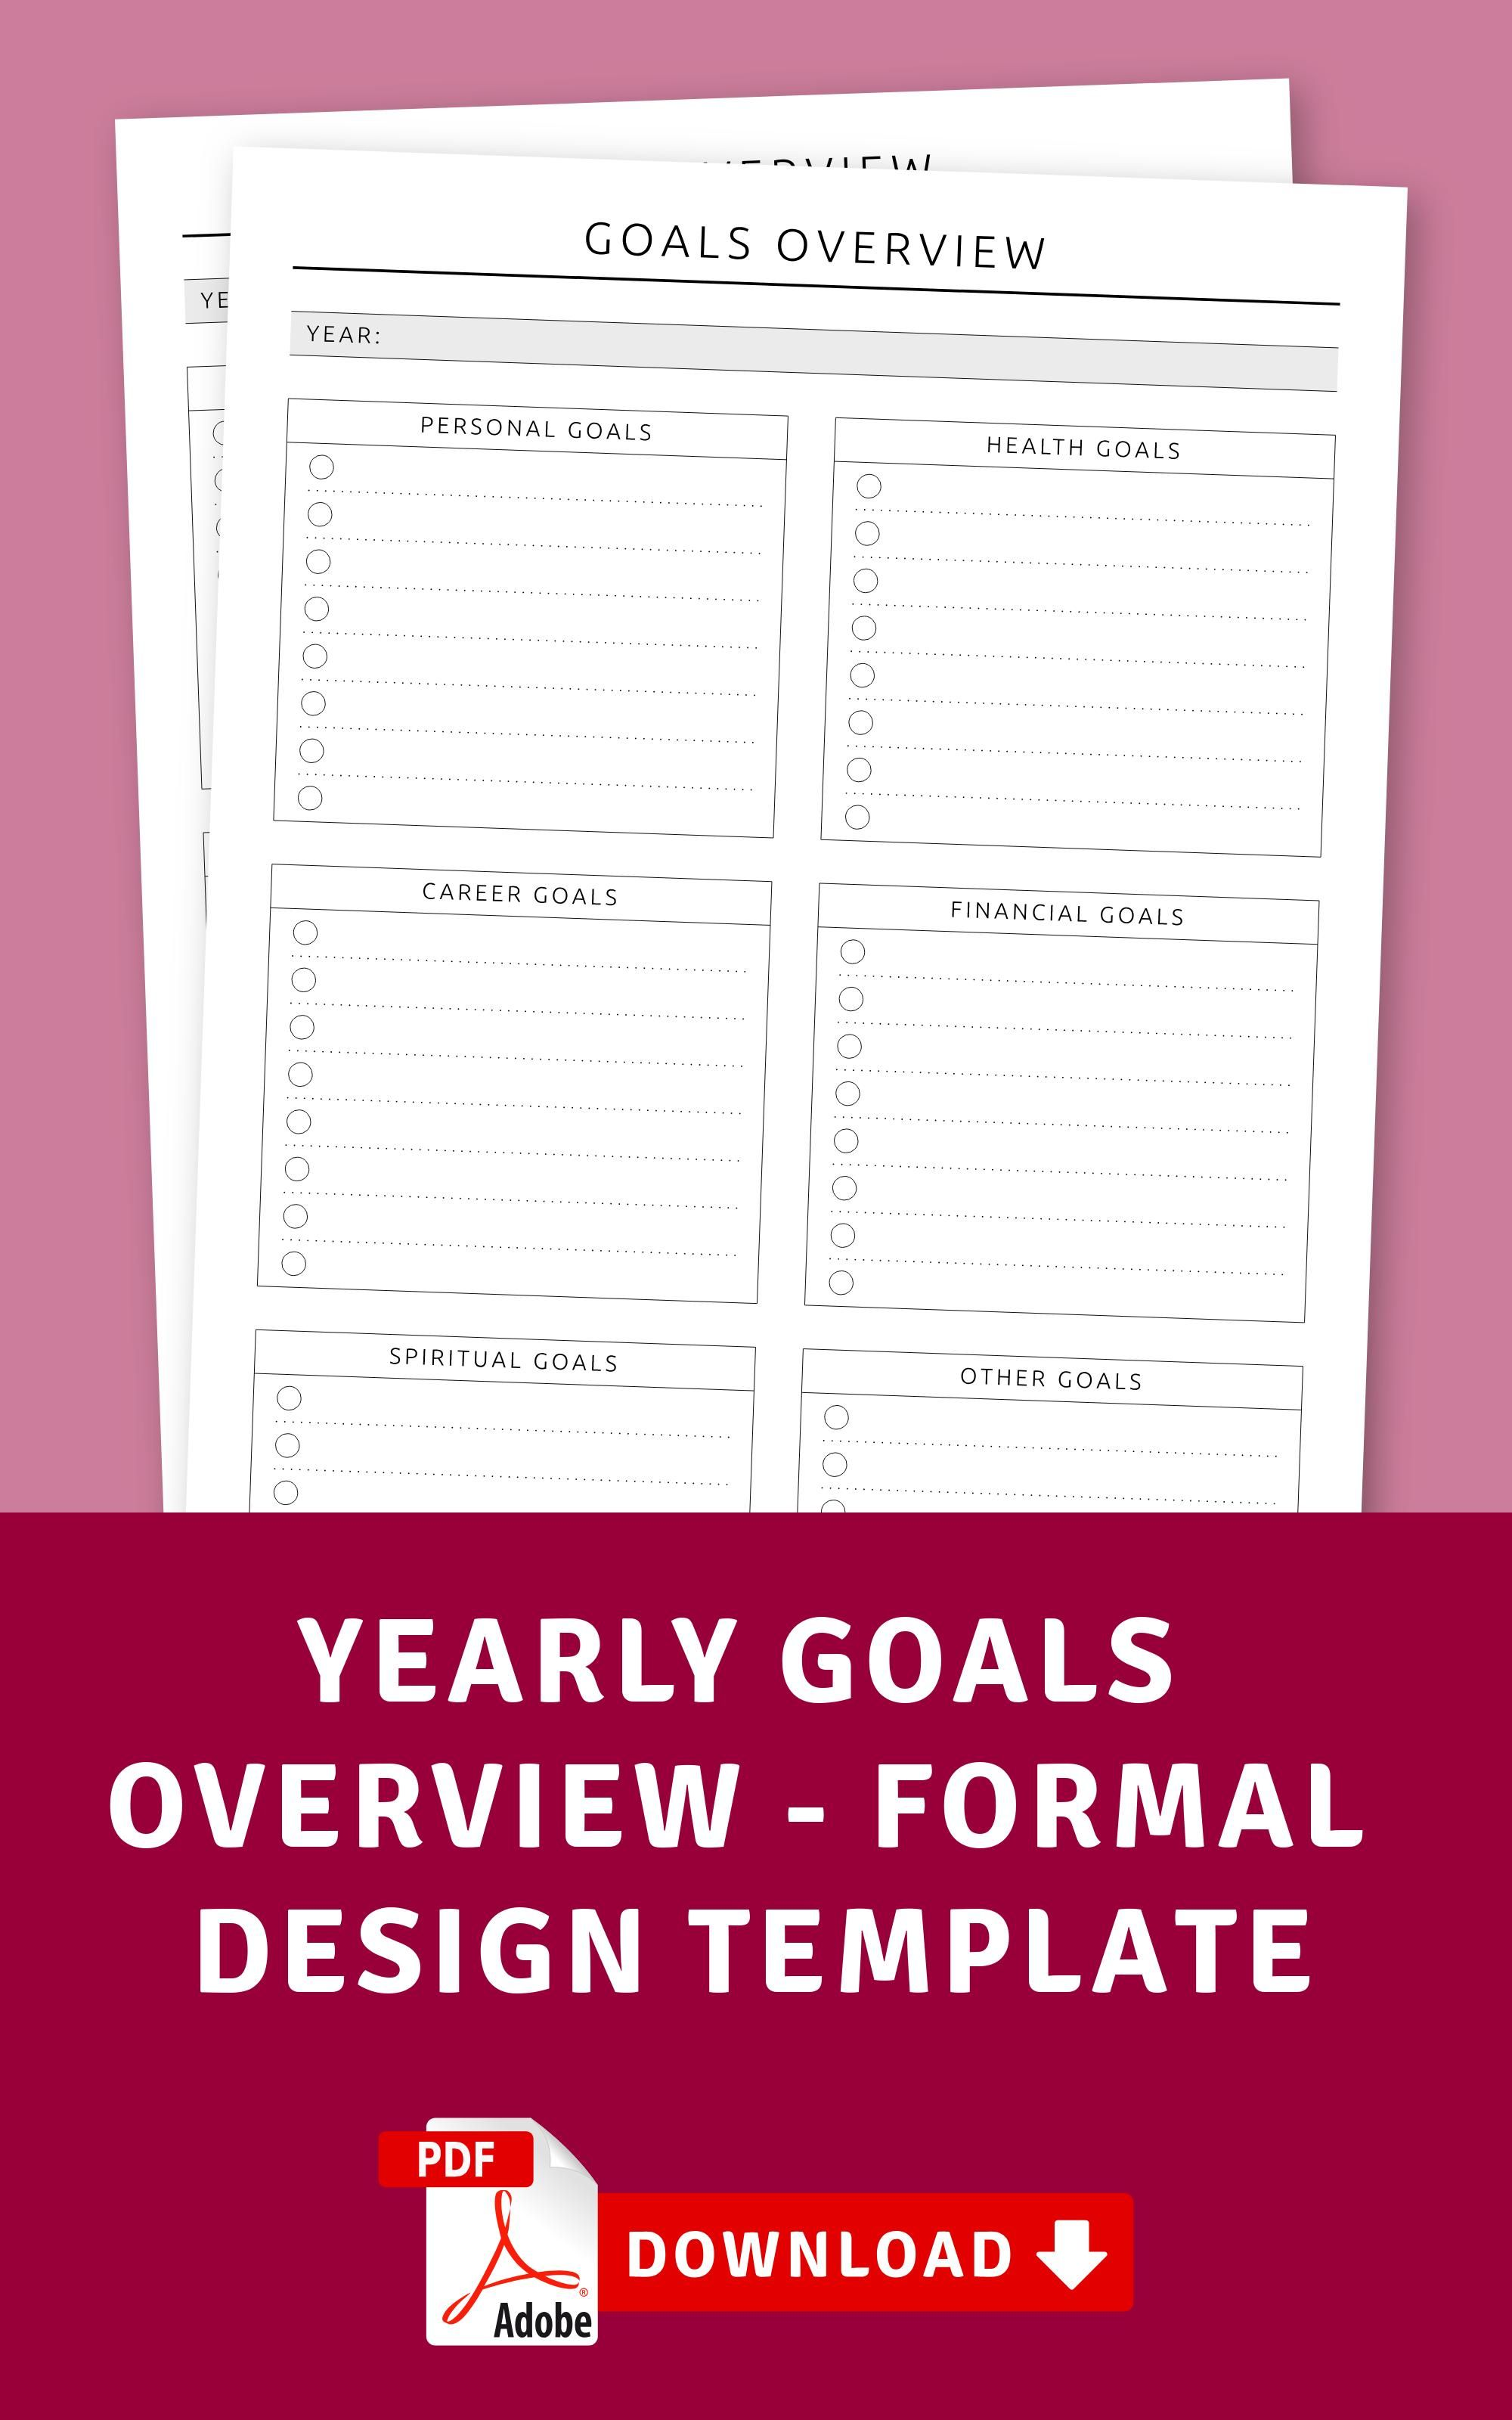 Yearly Goals Overview